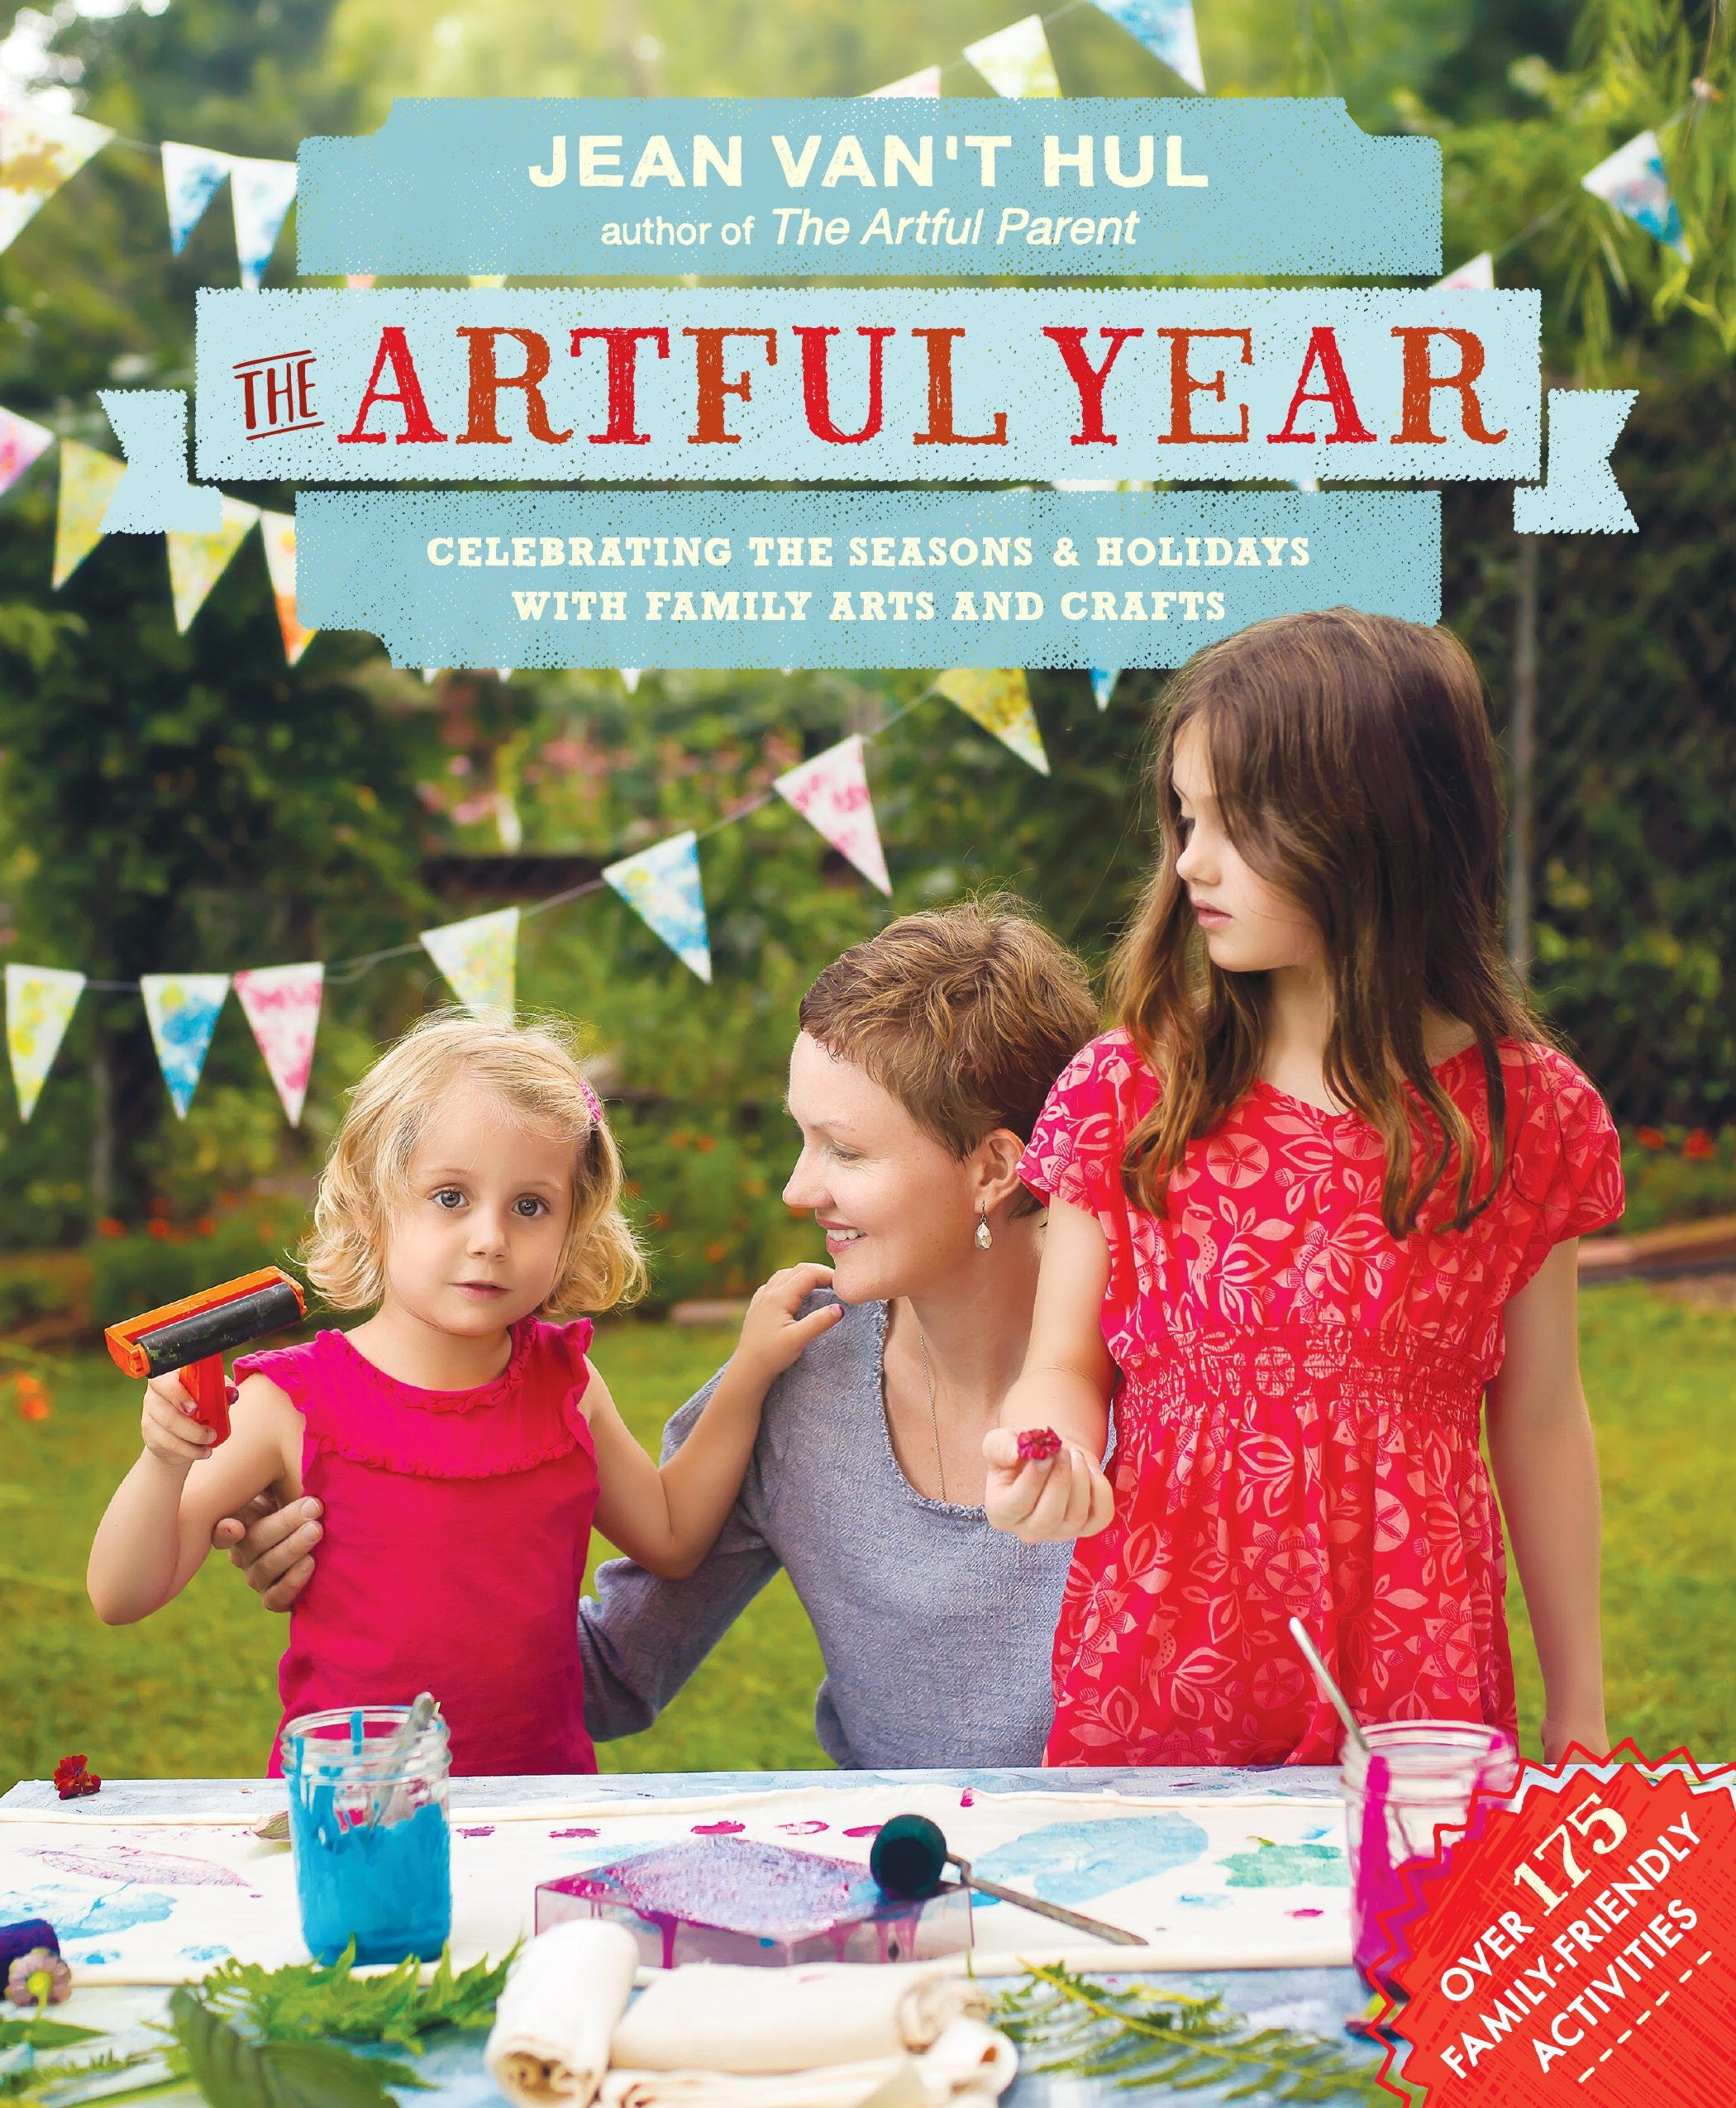 The Artful Year: Celebrating the Seasons and Holidays with Crafts and Recipes-Over 175 Family- Friendly Activities